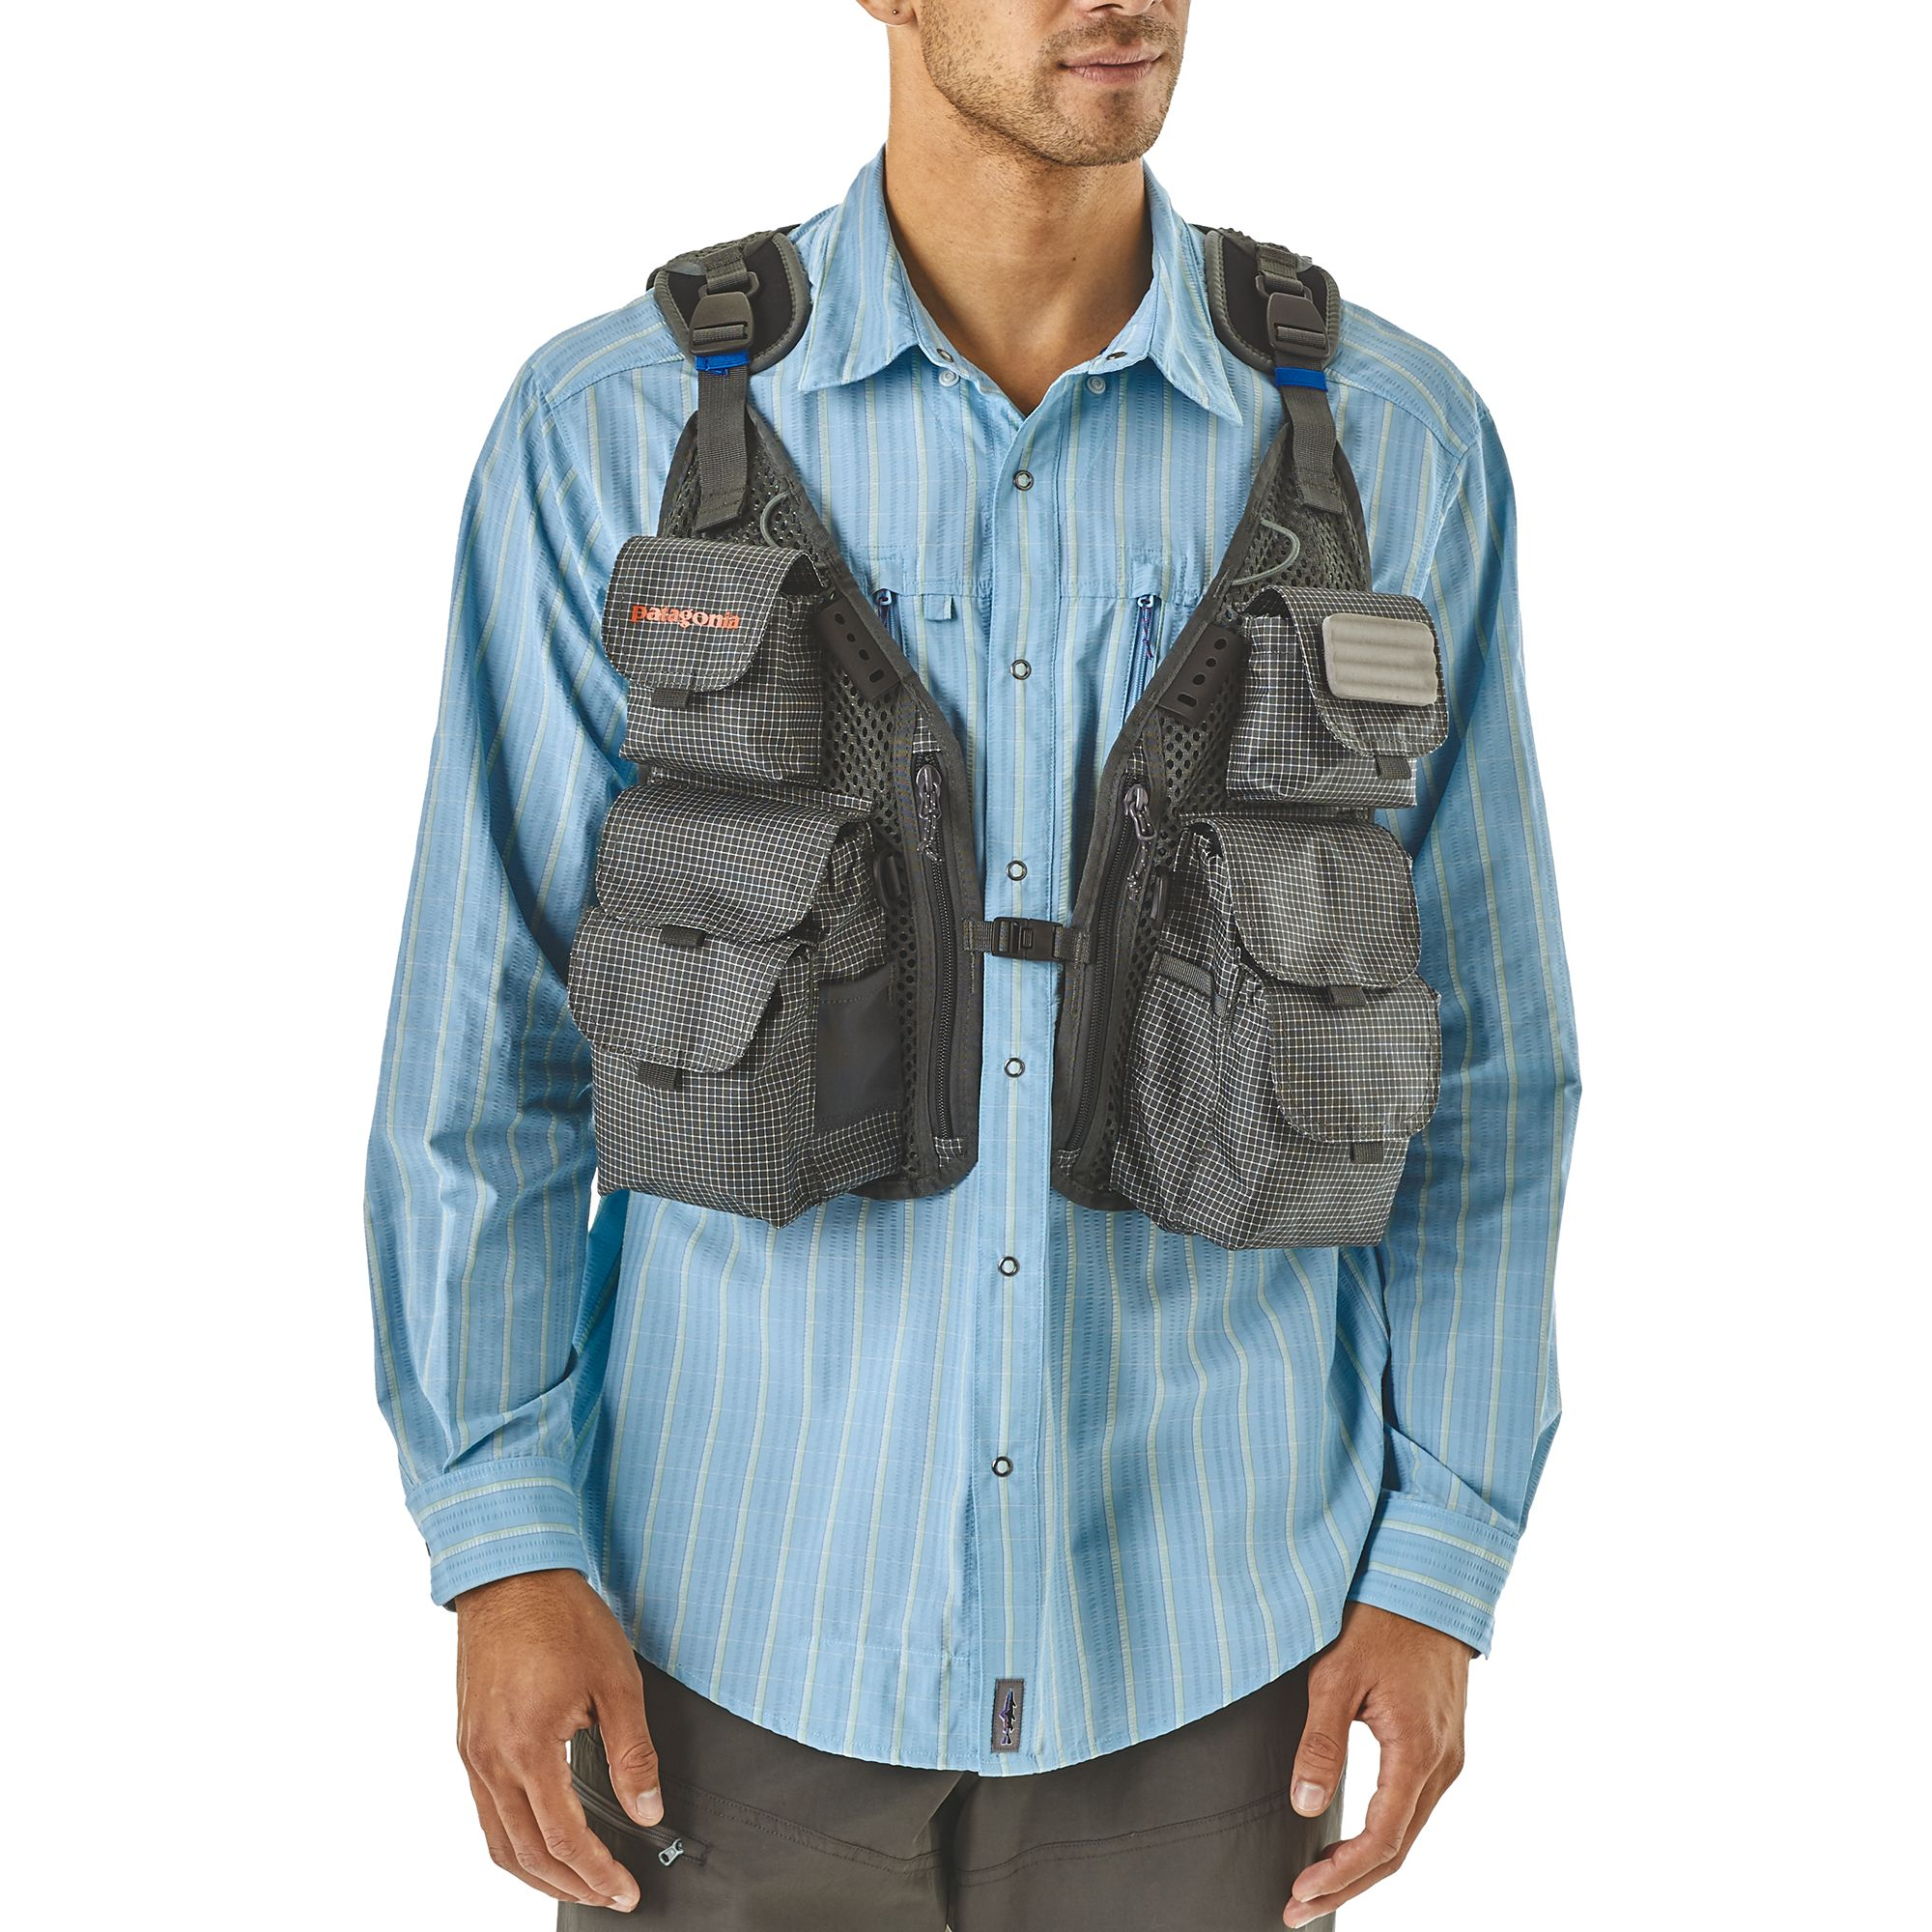 Convertible Vest Patagonia - Ready to action